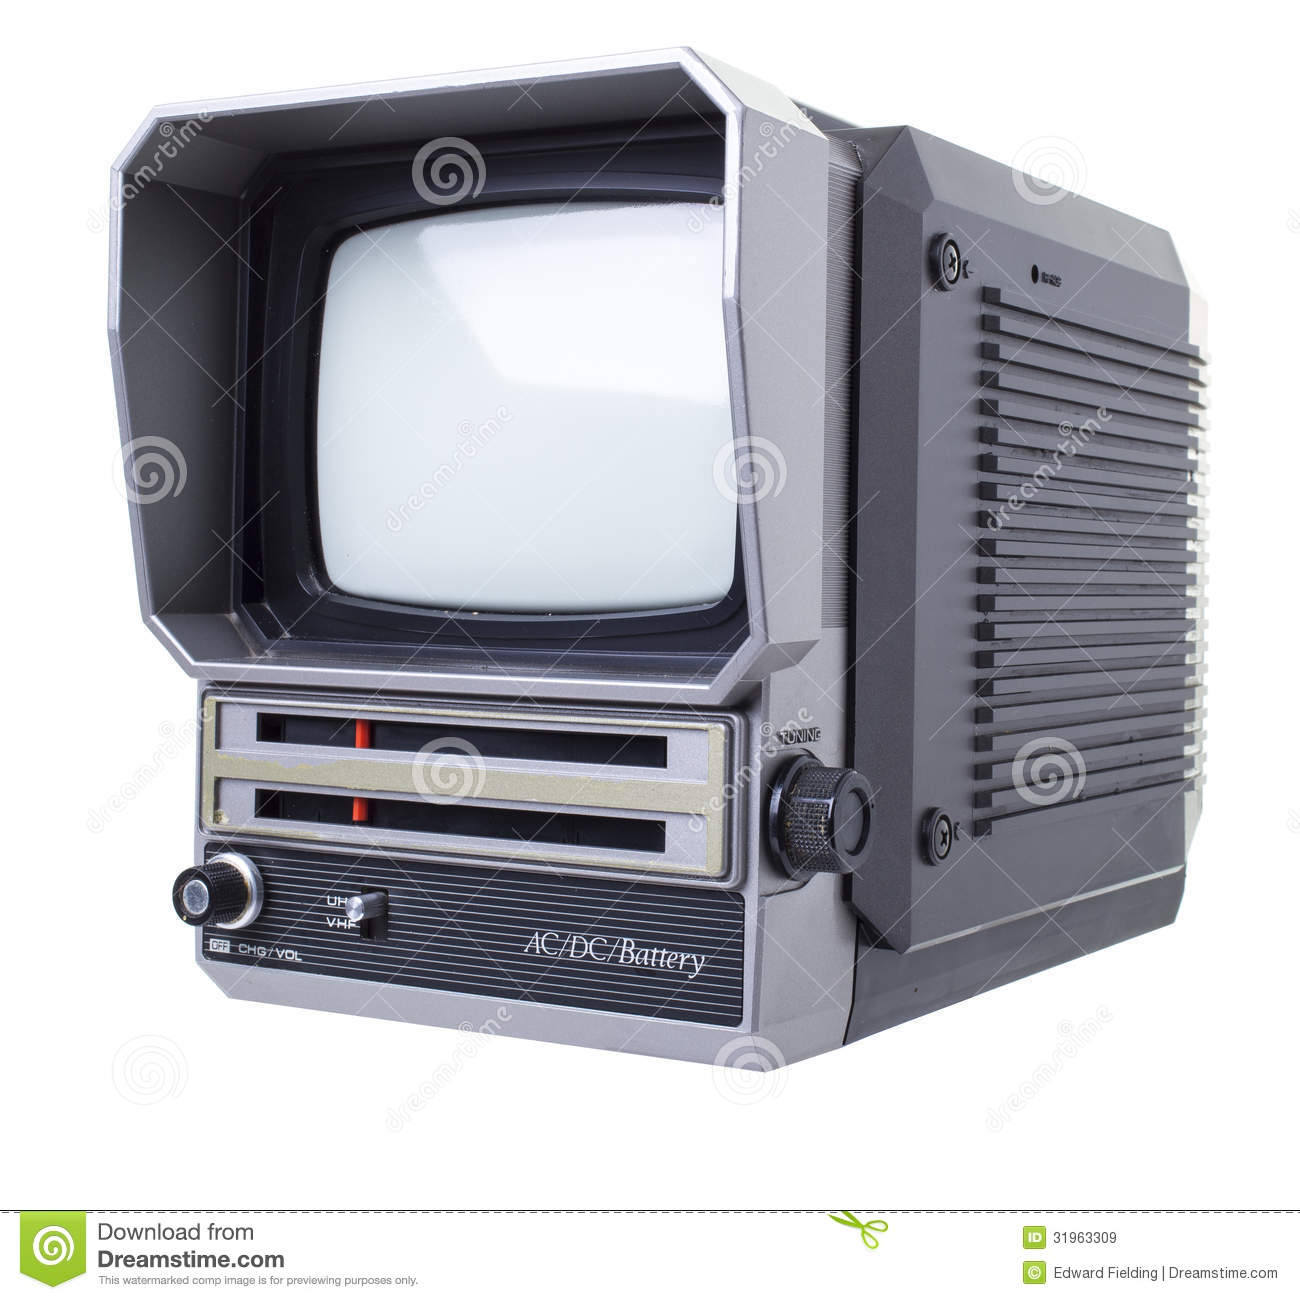 Royalty Free Stock Images Old Portable Tv Battery Powered Fm Radio Tube Television Image31963309 further 7259617 in addition 531942 How Install Sound System Lancer Radio Speakers Subs moreover Diary together with Ab8eb1eddc846a295c84c63c6a744933. on old portable tv radio combo